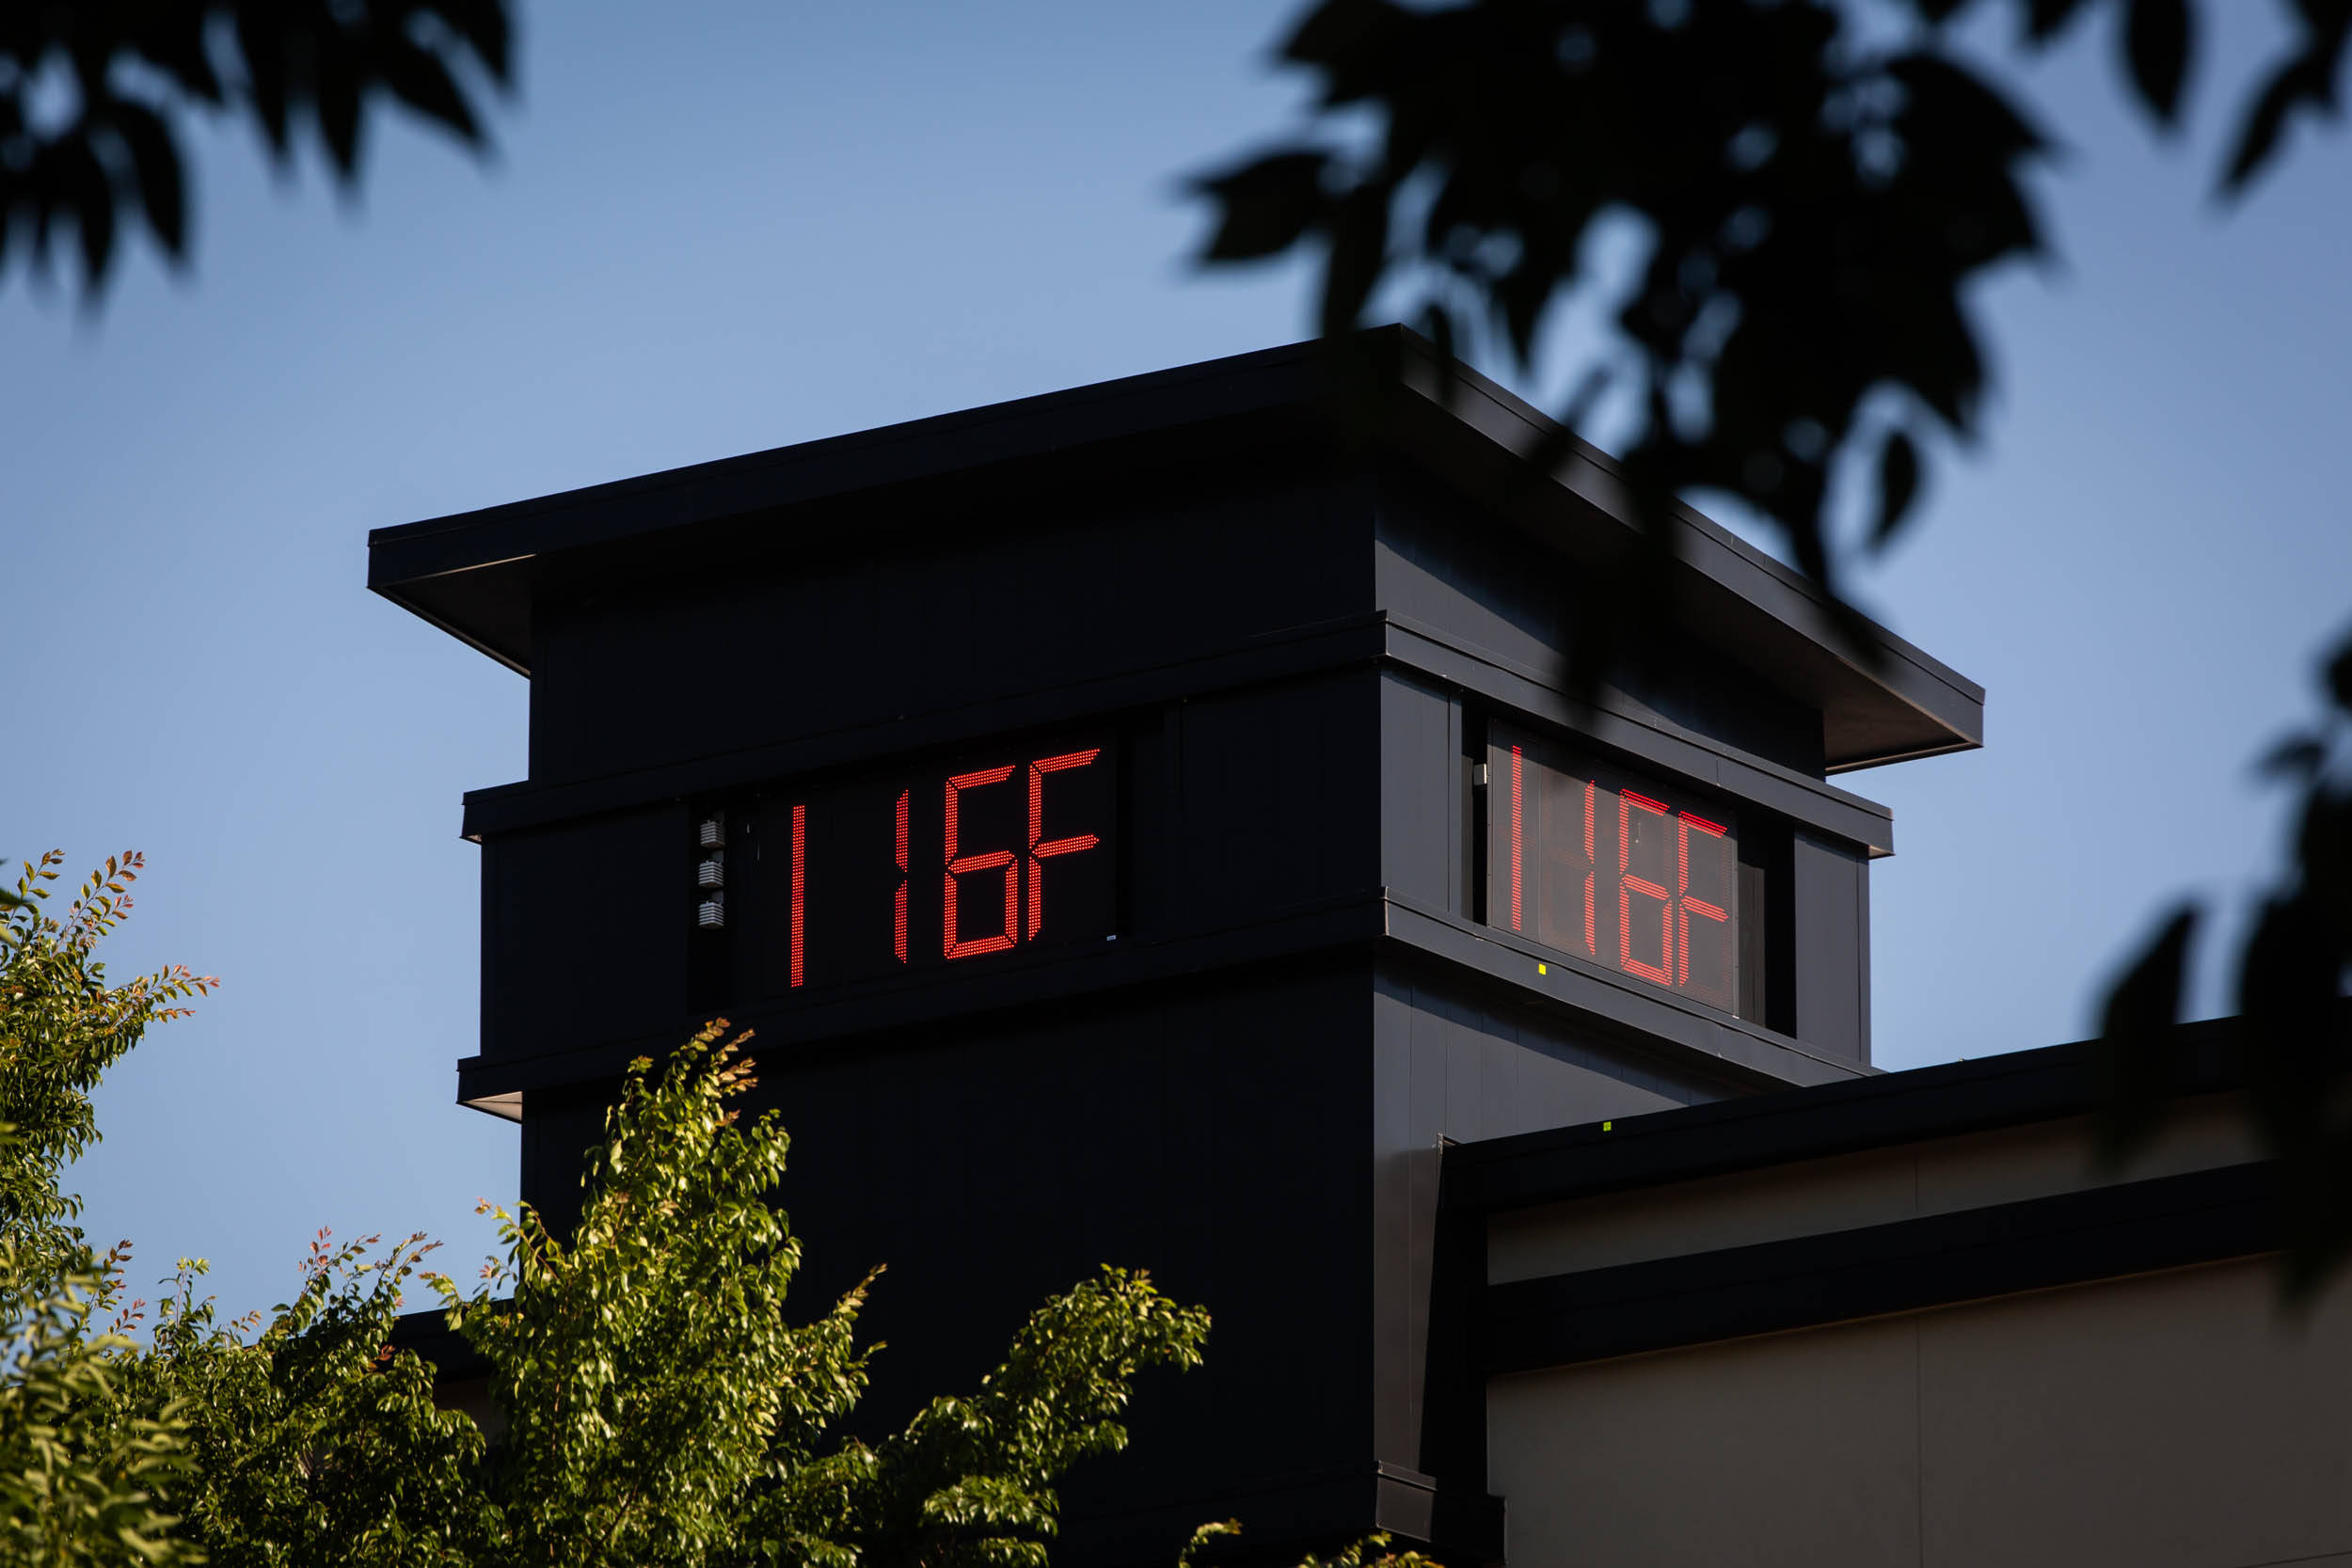 A thermometer reads 116 degrees Fahrenheit during a heatwave in Portland, Oregon on June 28. (Maranie Staab/Bloomberg)